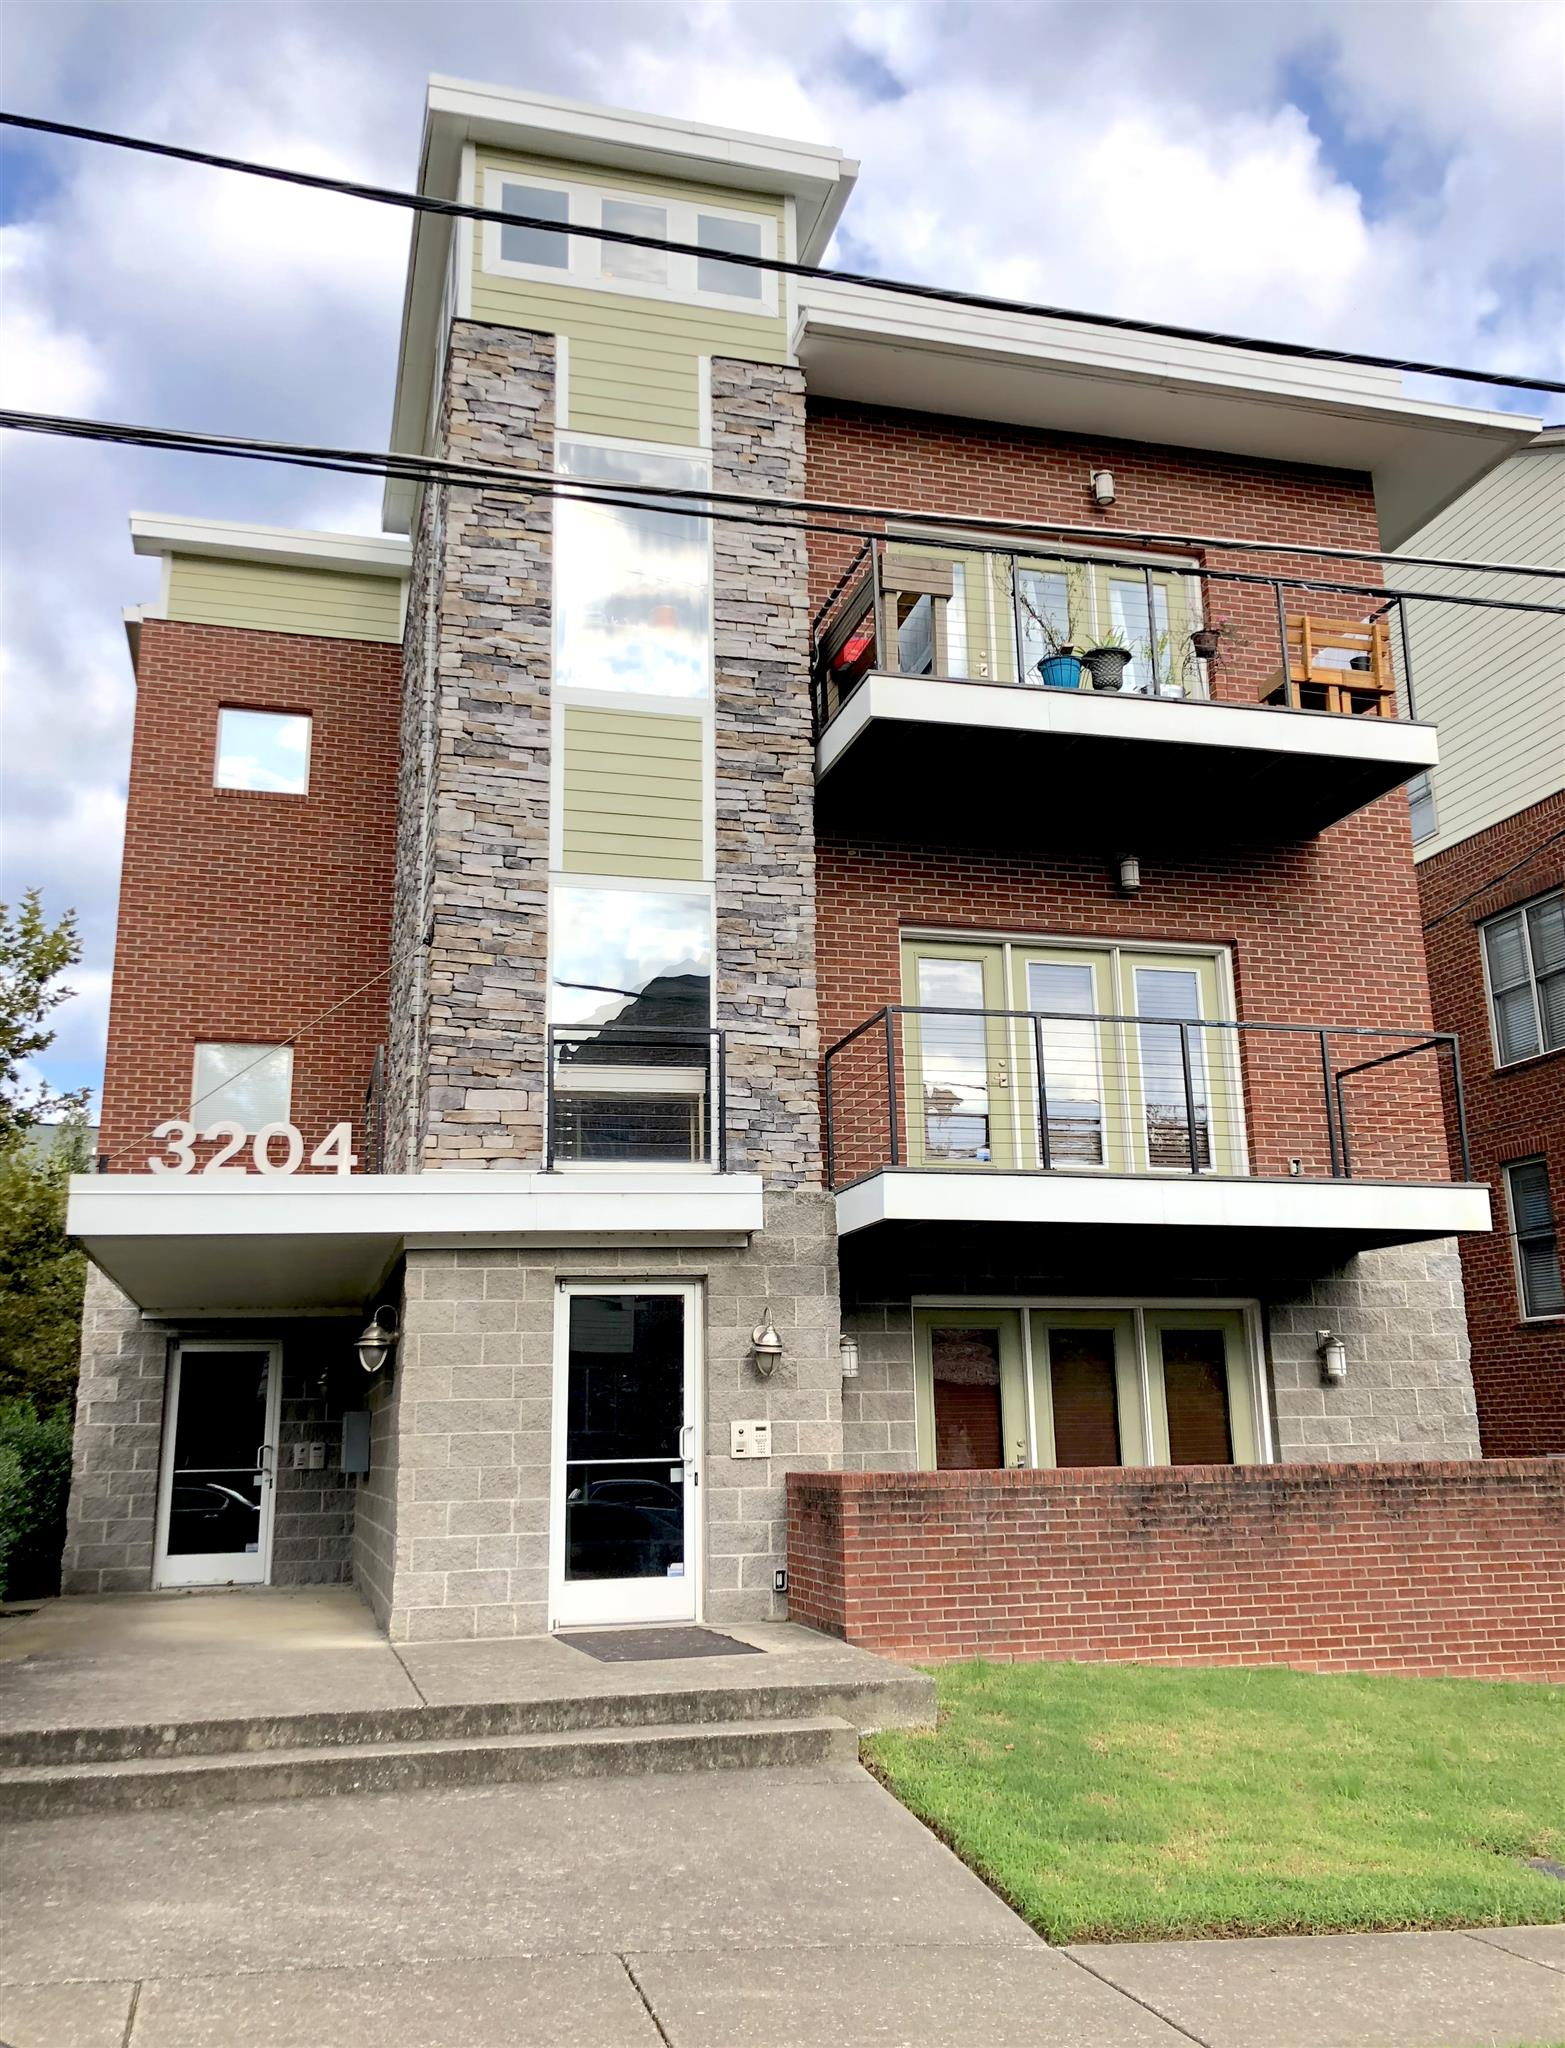 3204 Long Blvd Apt 302, Nashville - Midtown in Davidson County County, TN 37203 Home for Sale